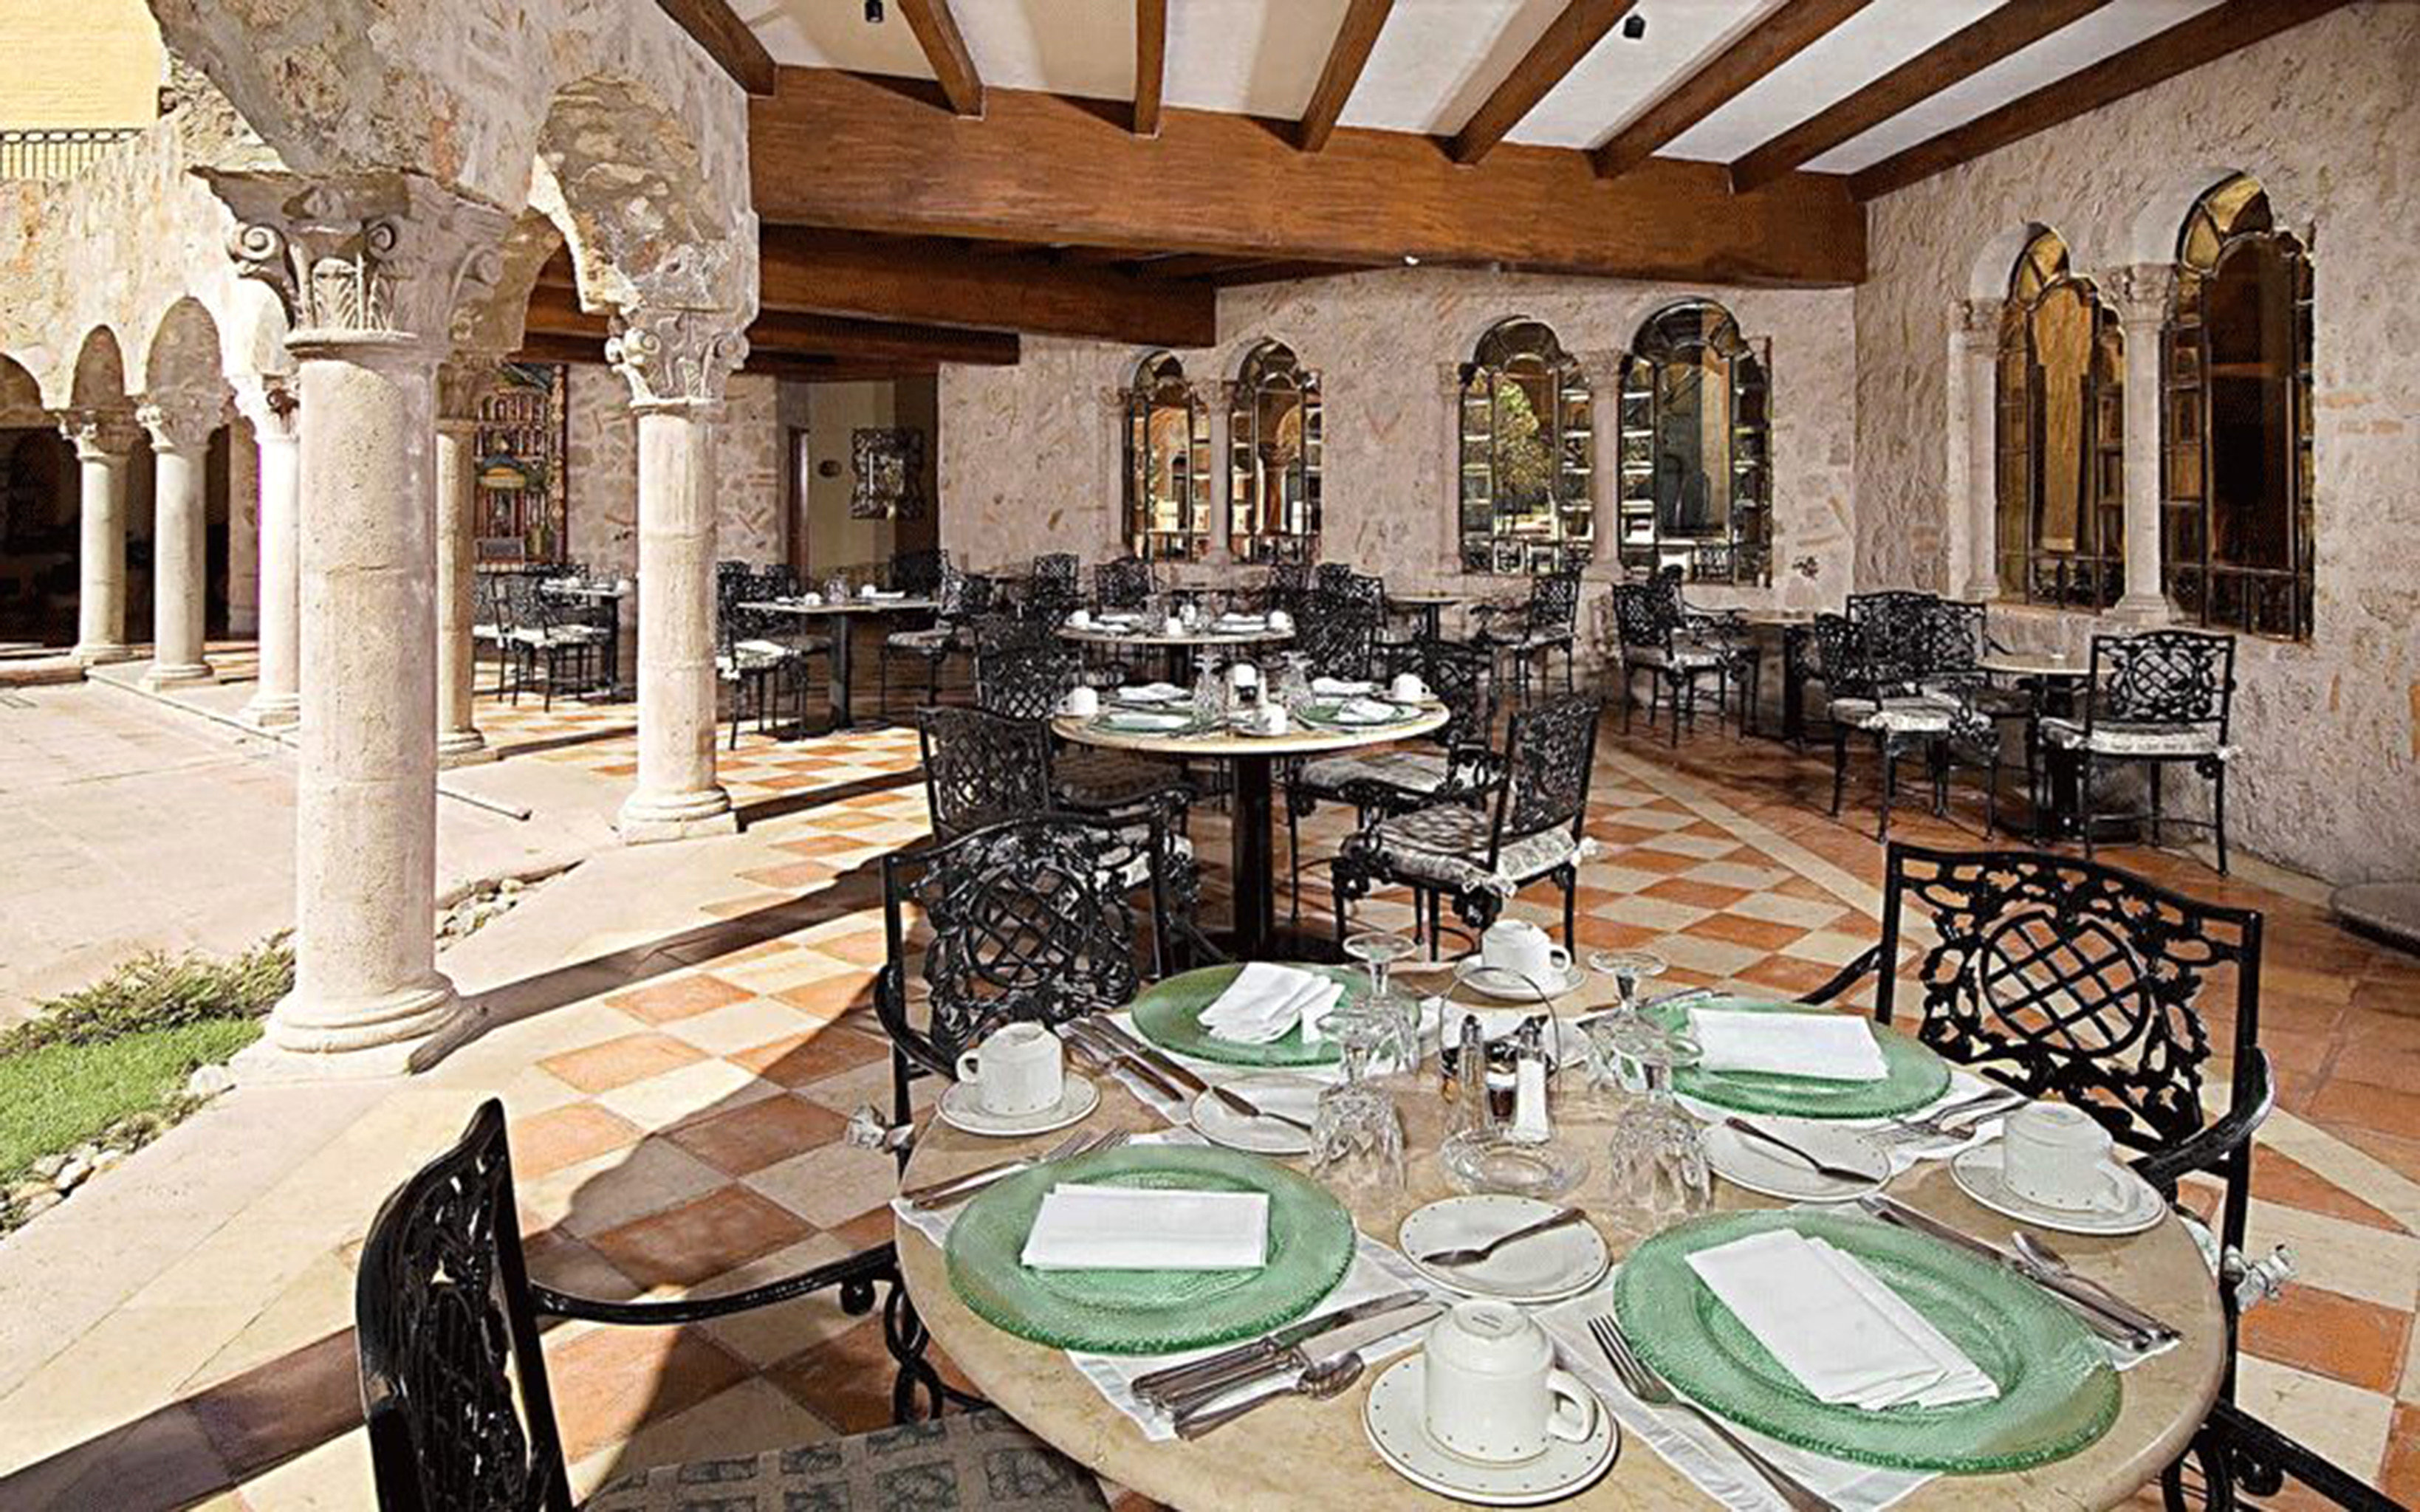 Boutique Courtyard Dining Drink Eat Family Historic Honeymoon Patio Romantic Town chair property building mansion home hacienda Villa restaurant palace cottage set dining table